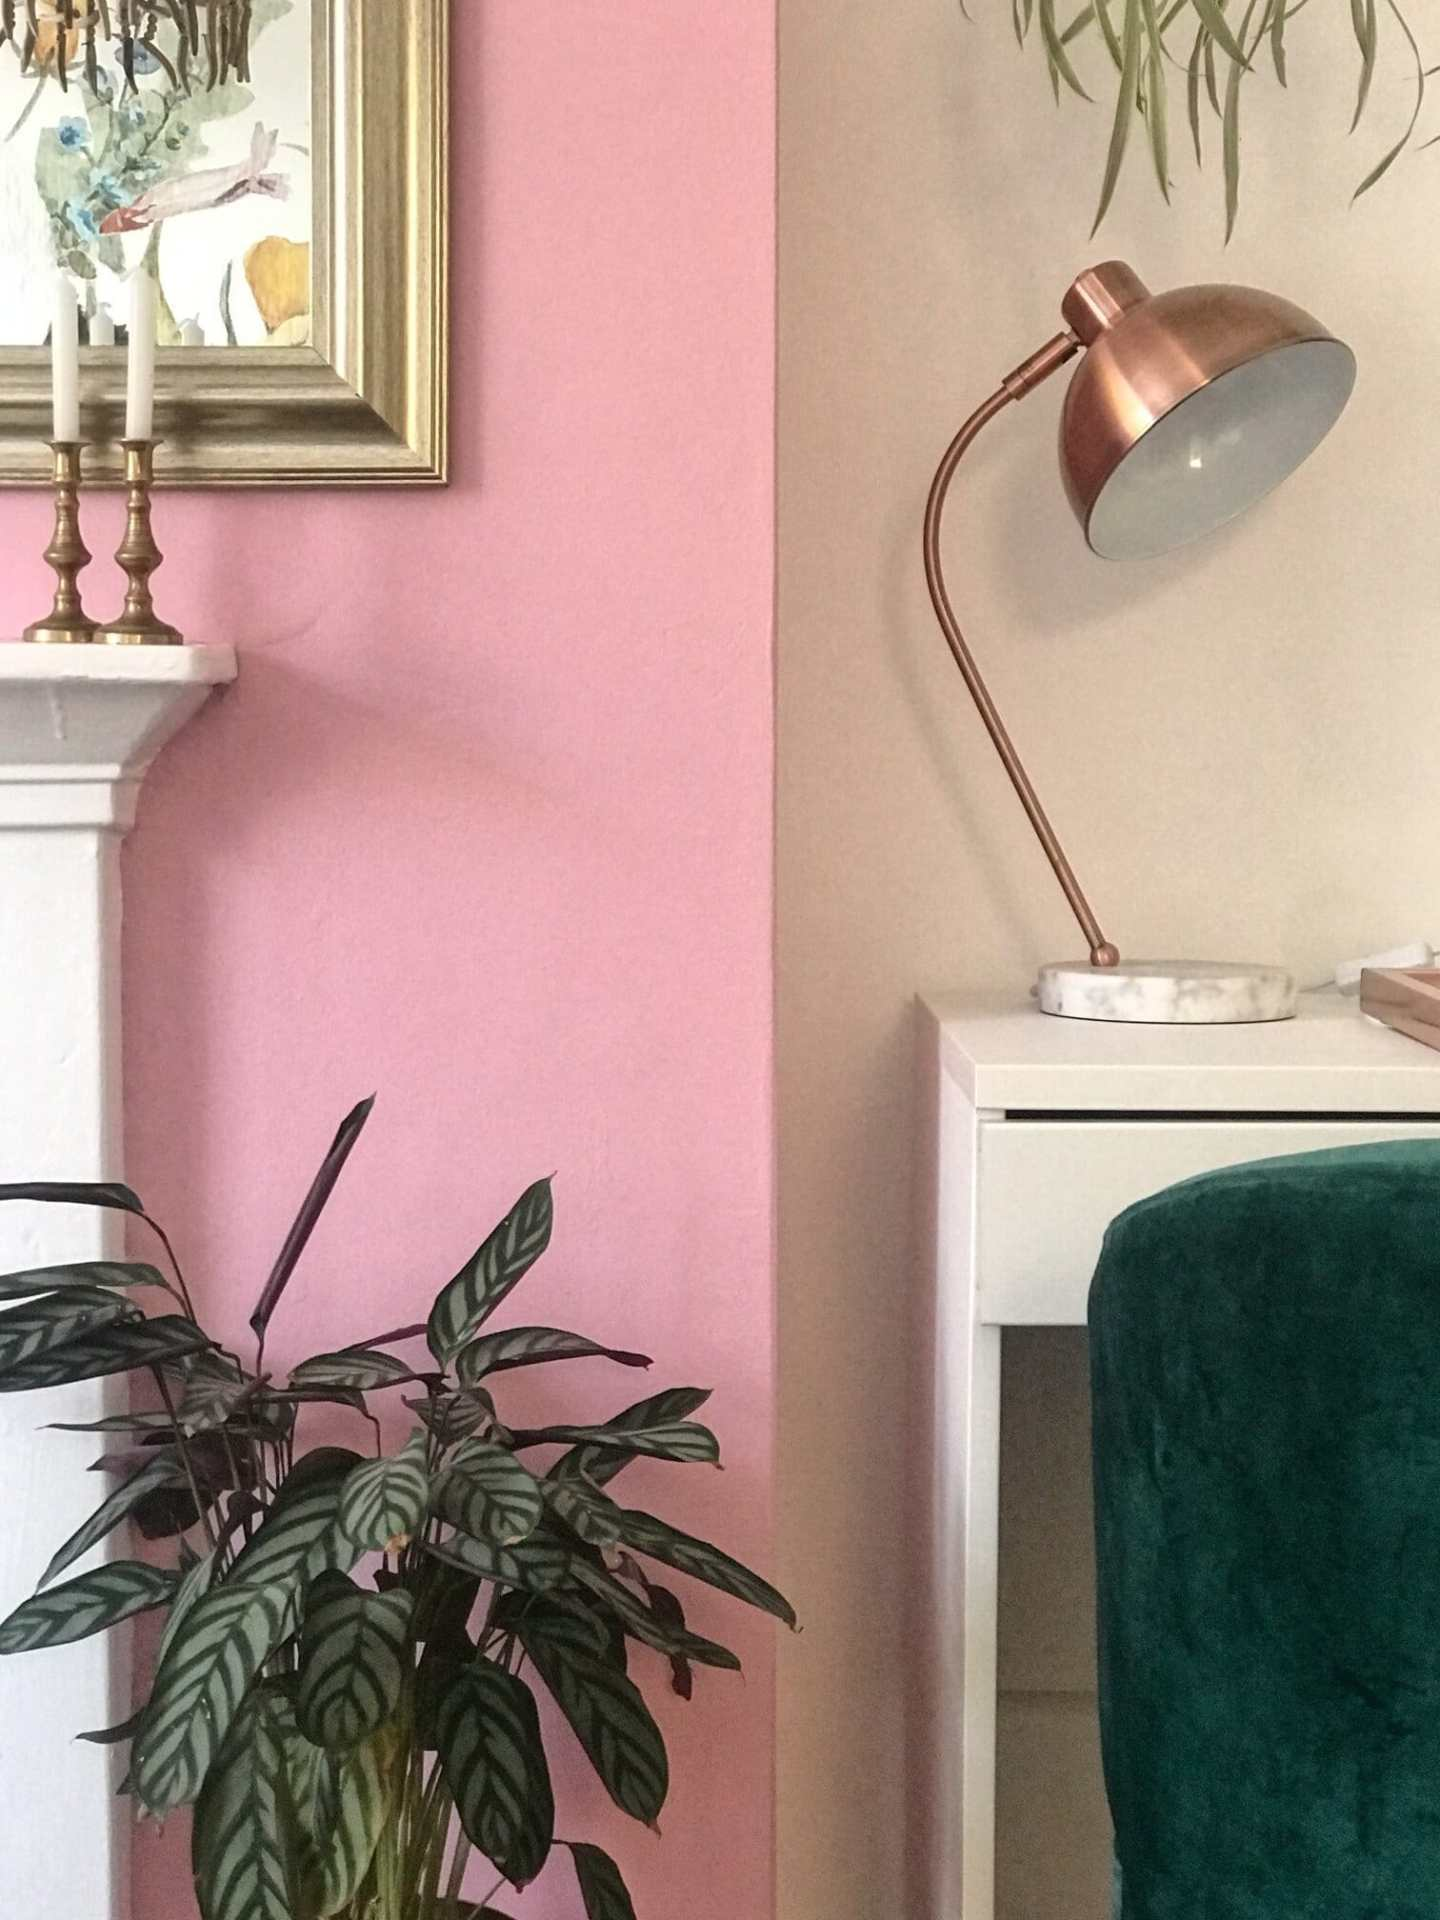 The pink wall makes the greens really stand out